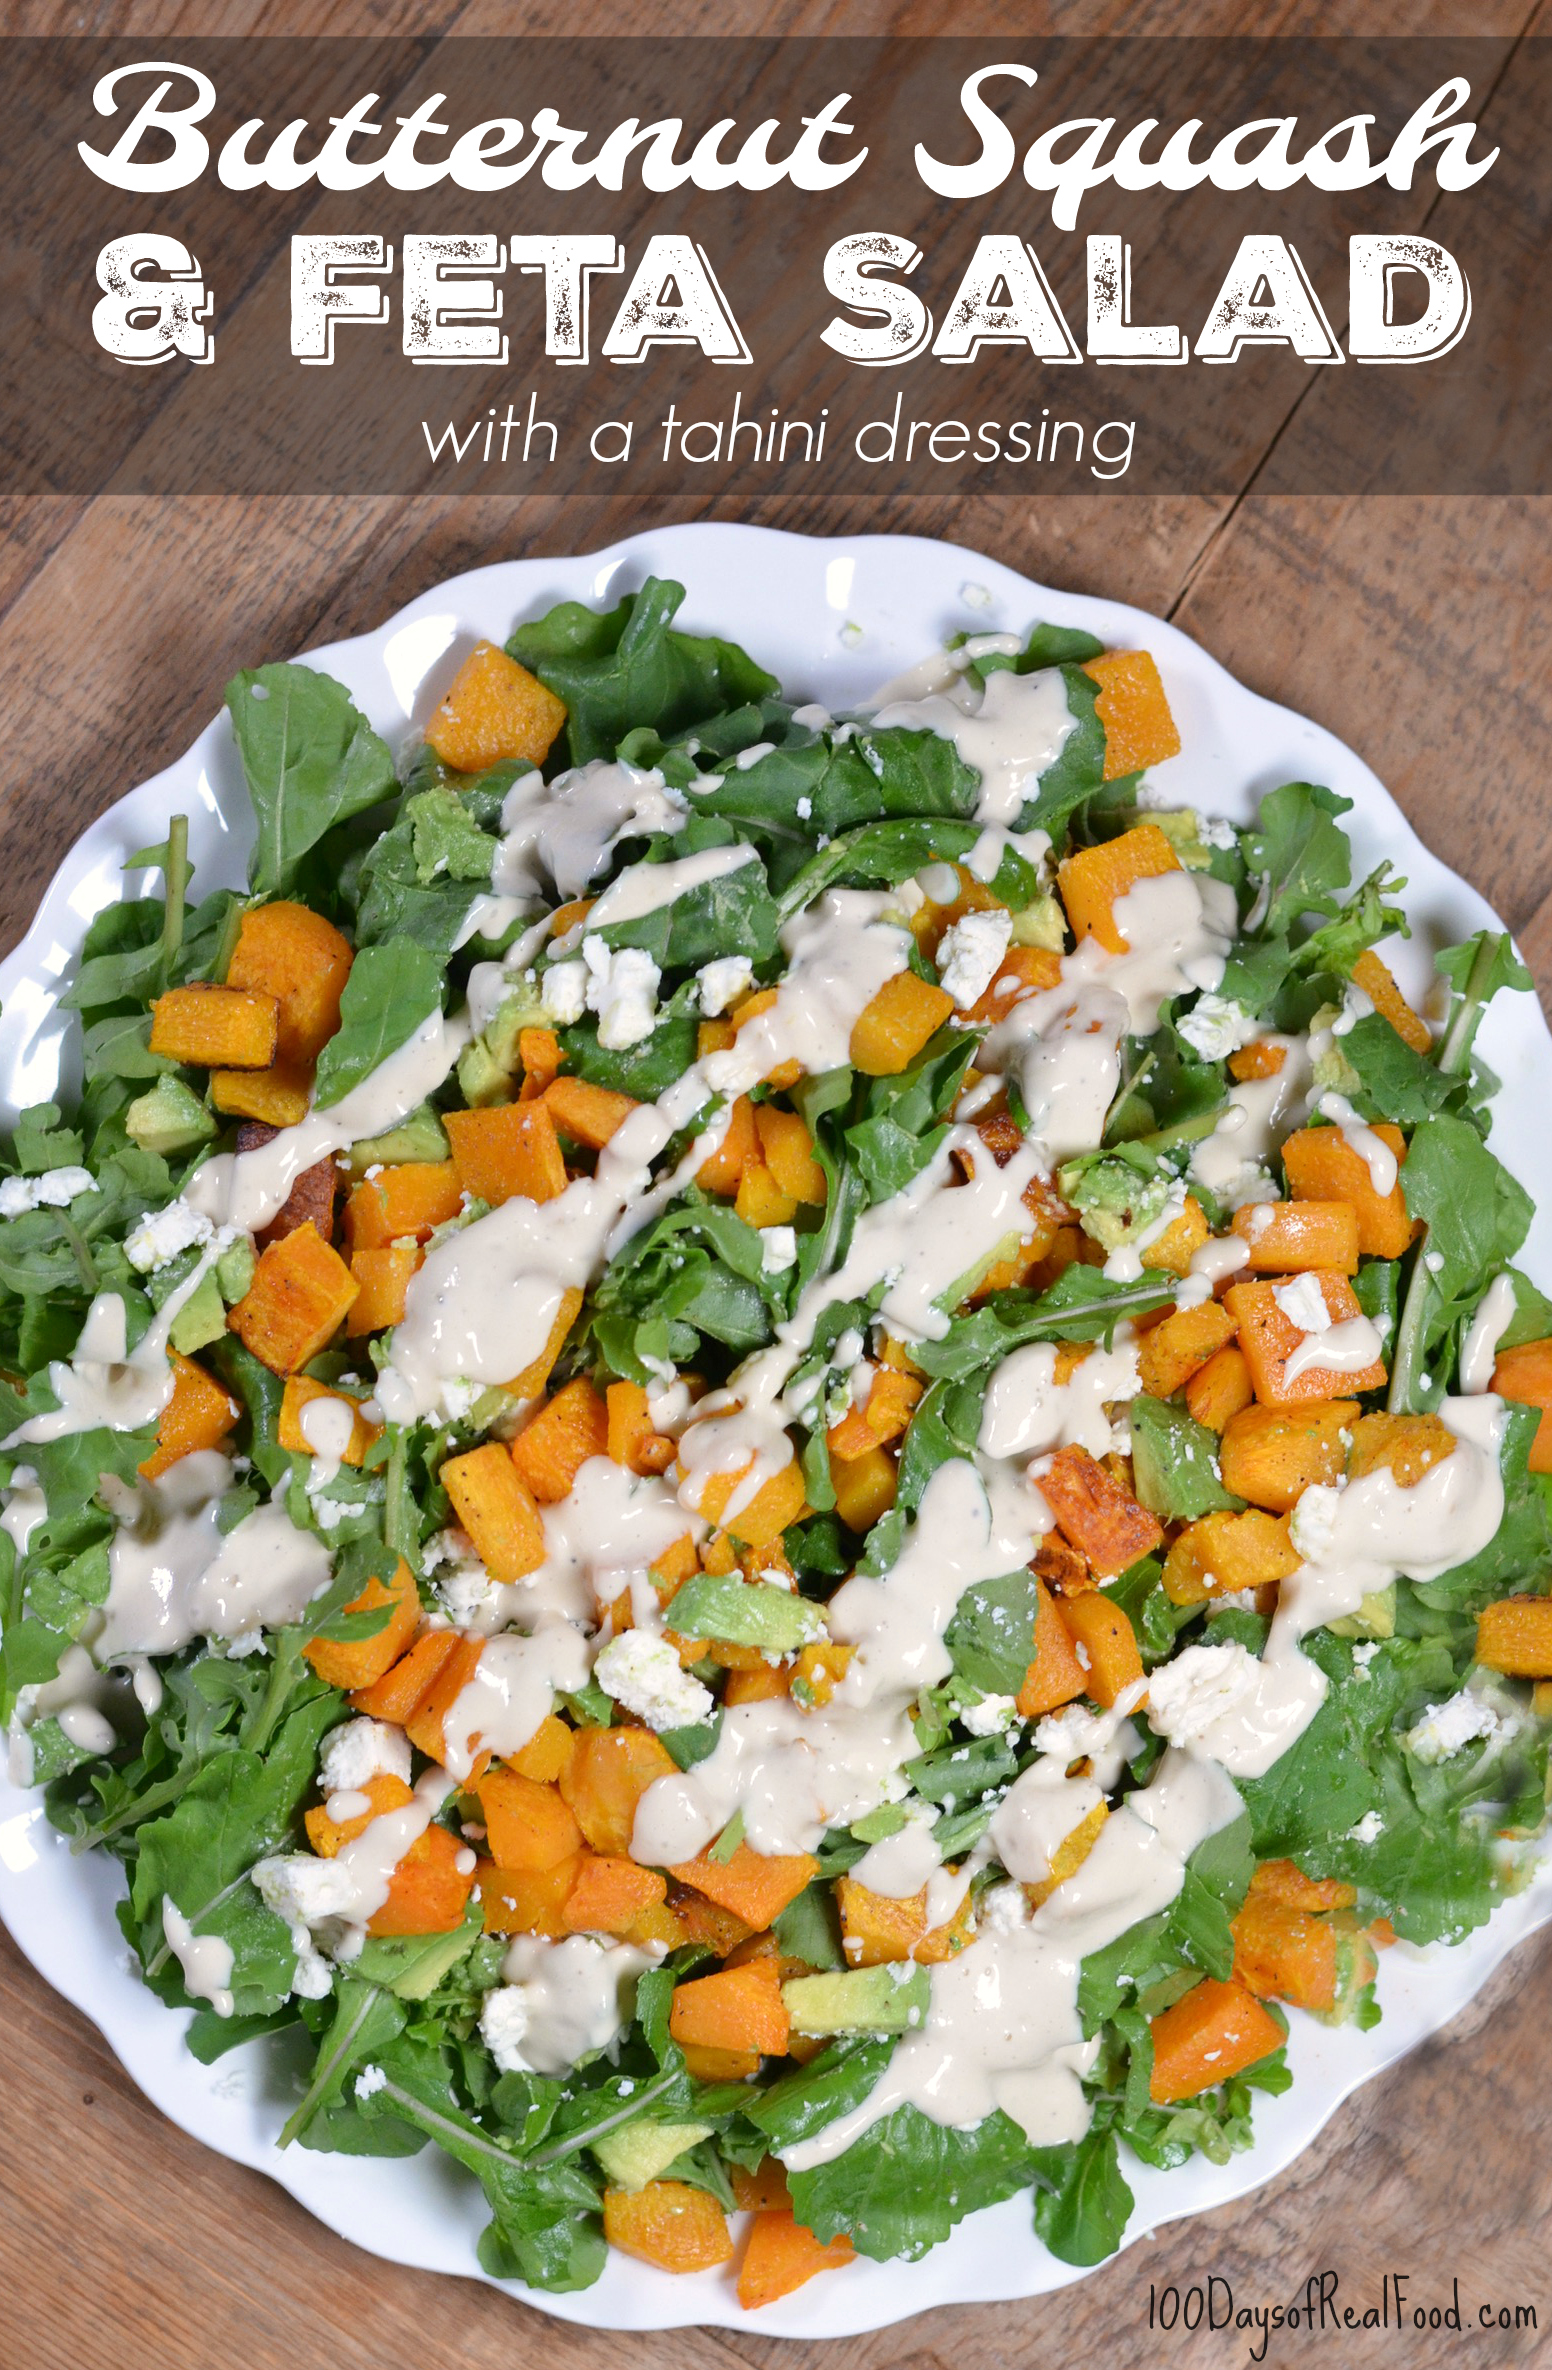 Butternut Squash Salad with feta cheese and a tahini dressing